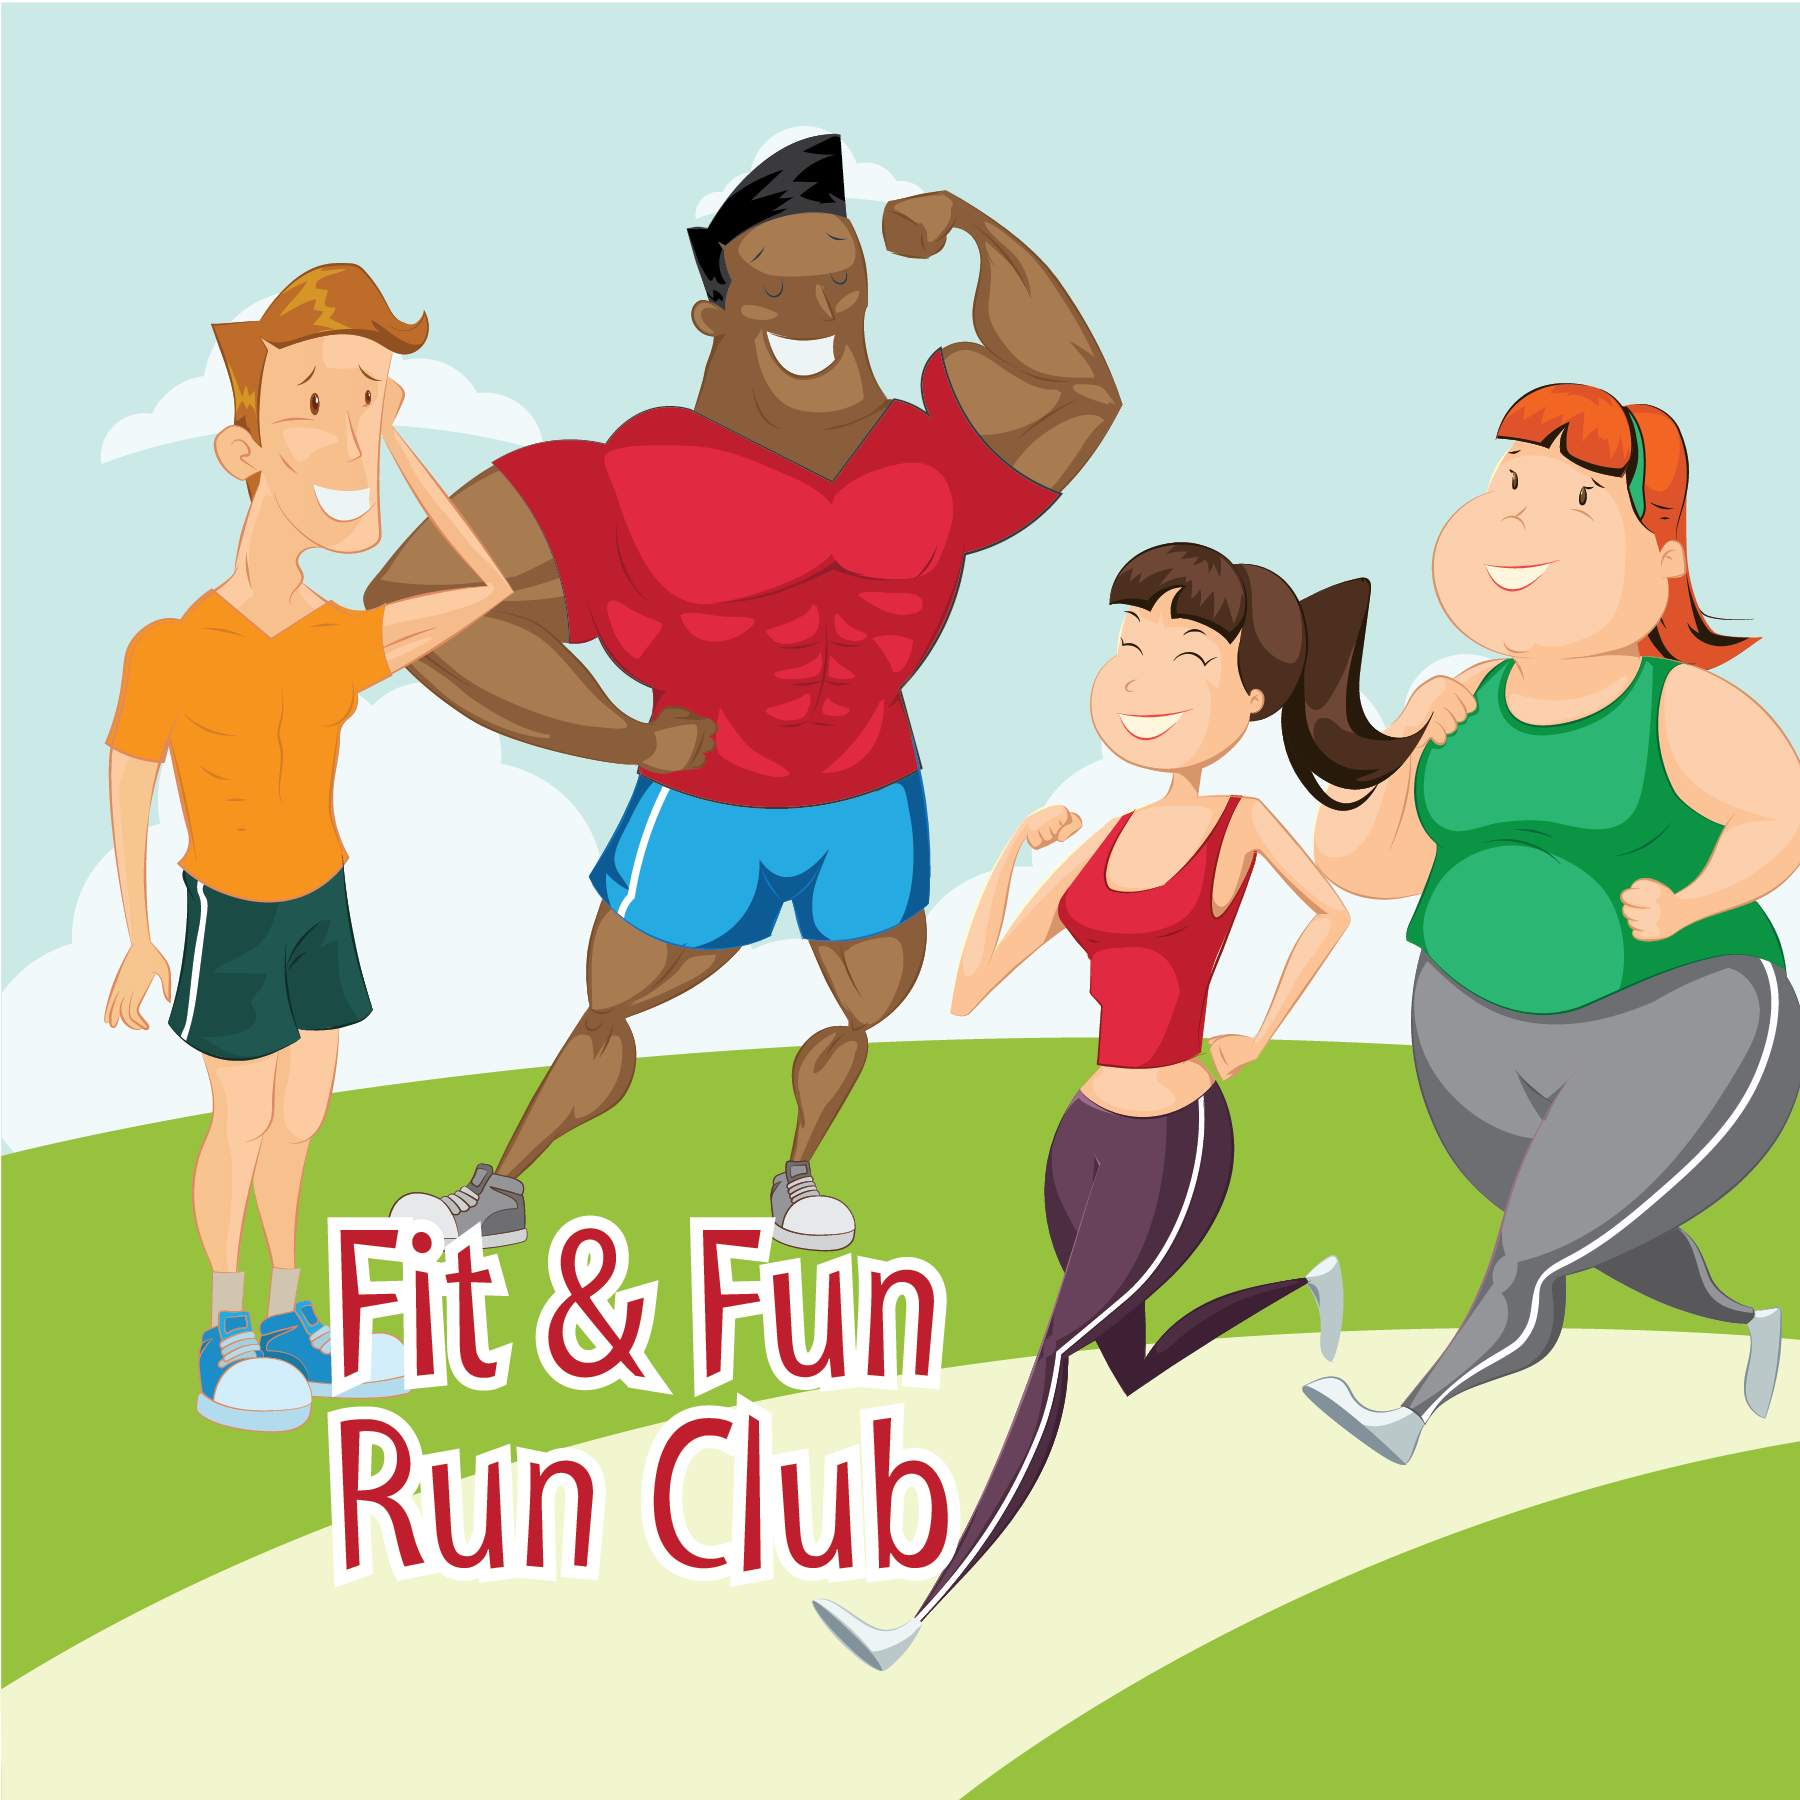 Fit & Fun Run Club